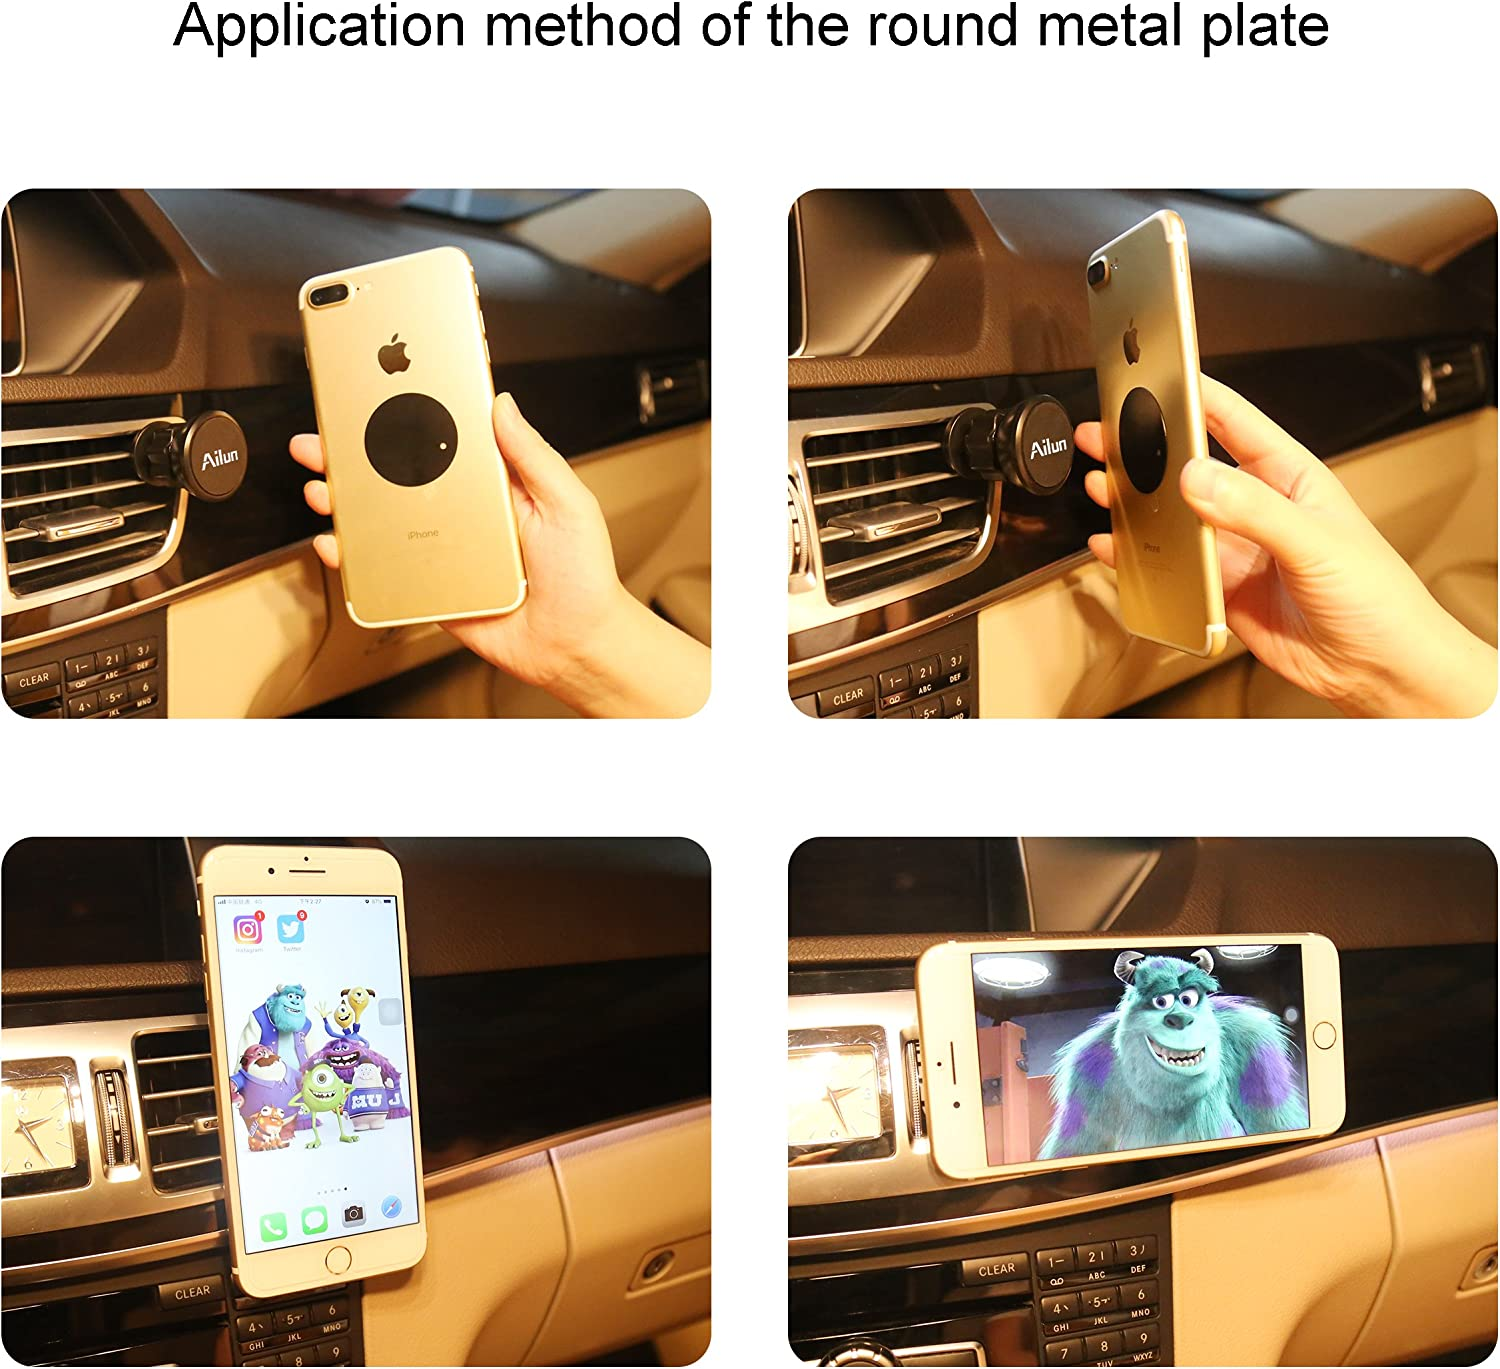 S20Ultra S10 S9 S8 Plus Note 10 and Other Tablets Black Ailun Car Phone Mount Round Magnet Mount Air Vent Magnetic Holder for iPhone 11//11 Pro//11 Pro Max//X Xs XR Xs Max Galaxy s20 s20